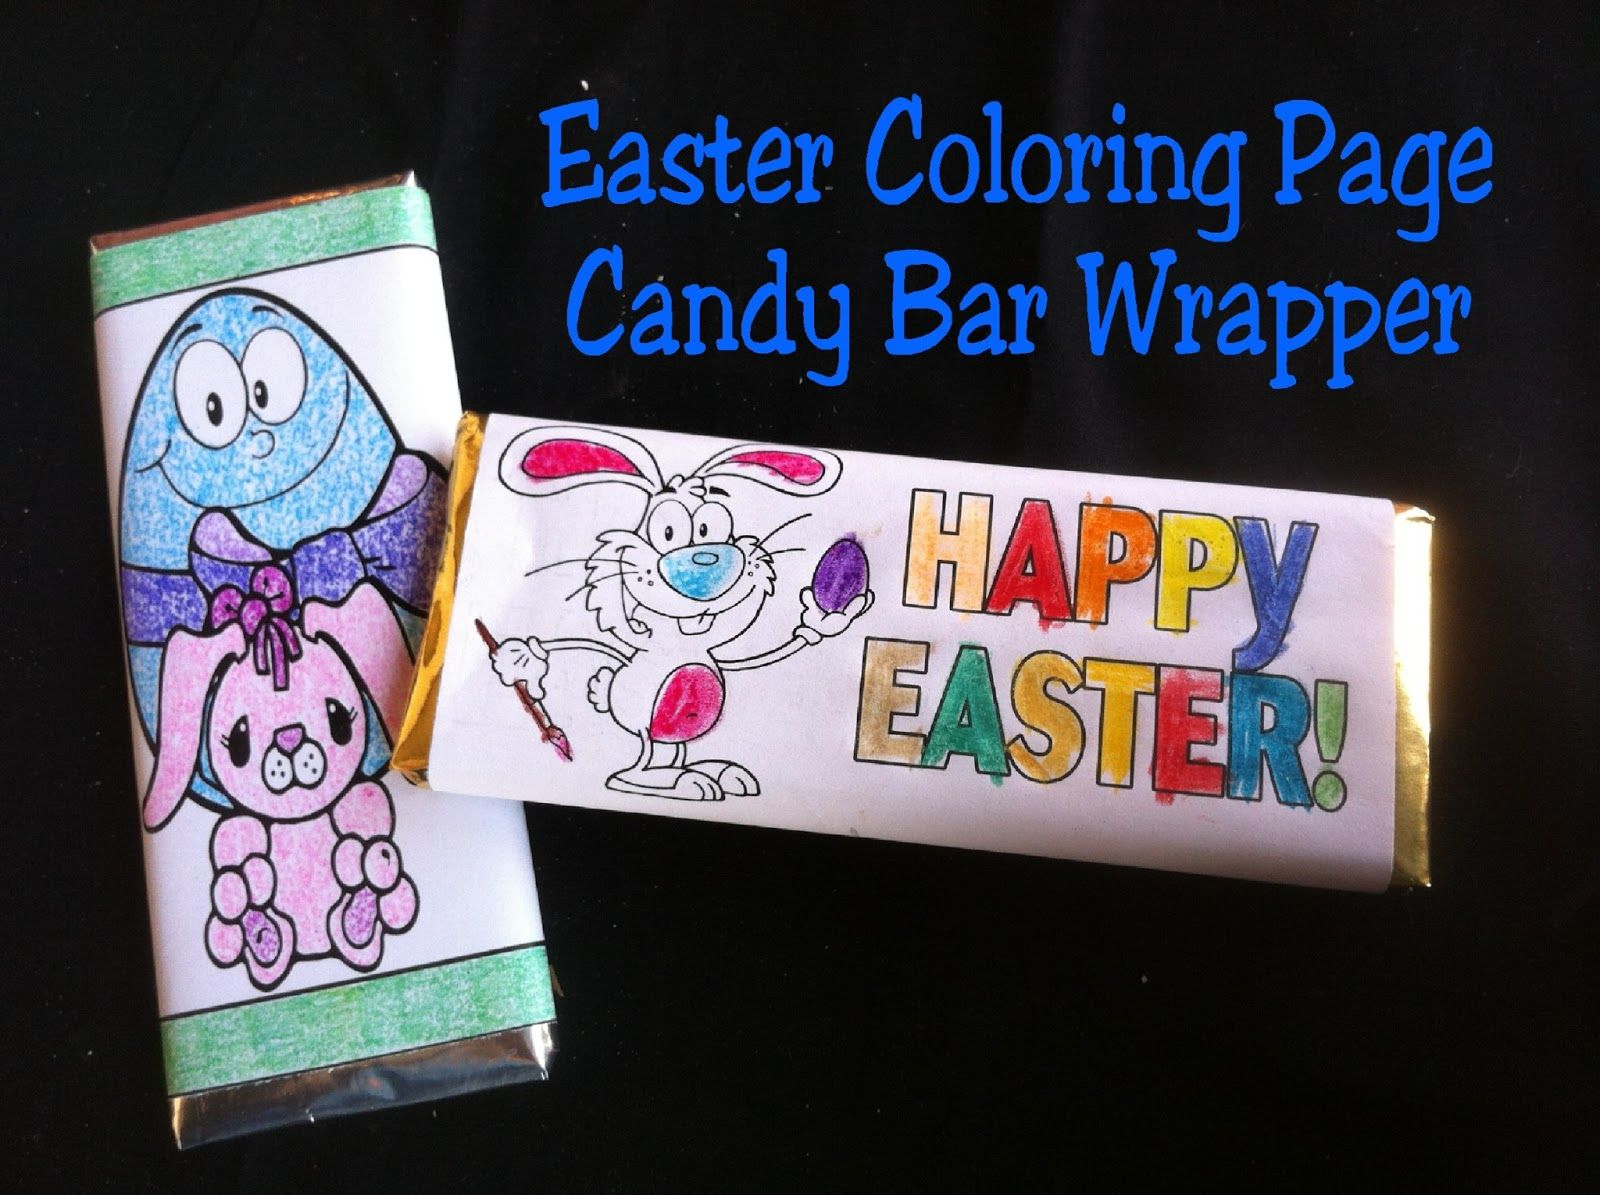 Easter Coloring Page Candy Bar Wrapper Free Printable | Free - Free Printable Birthday Candy Bar Wrappers